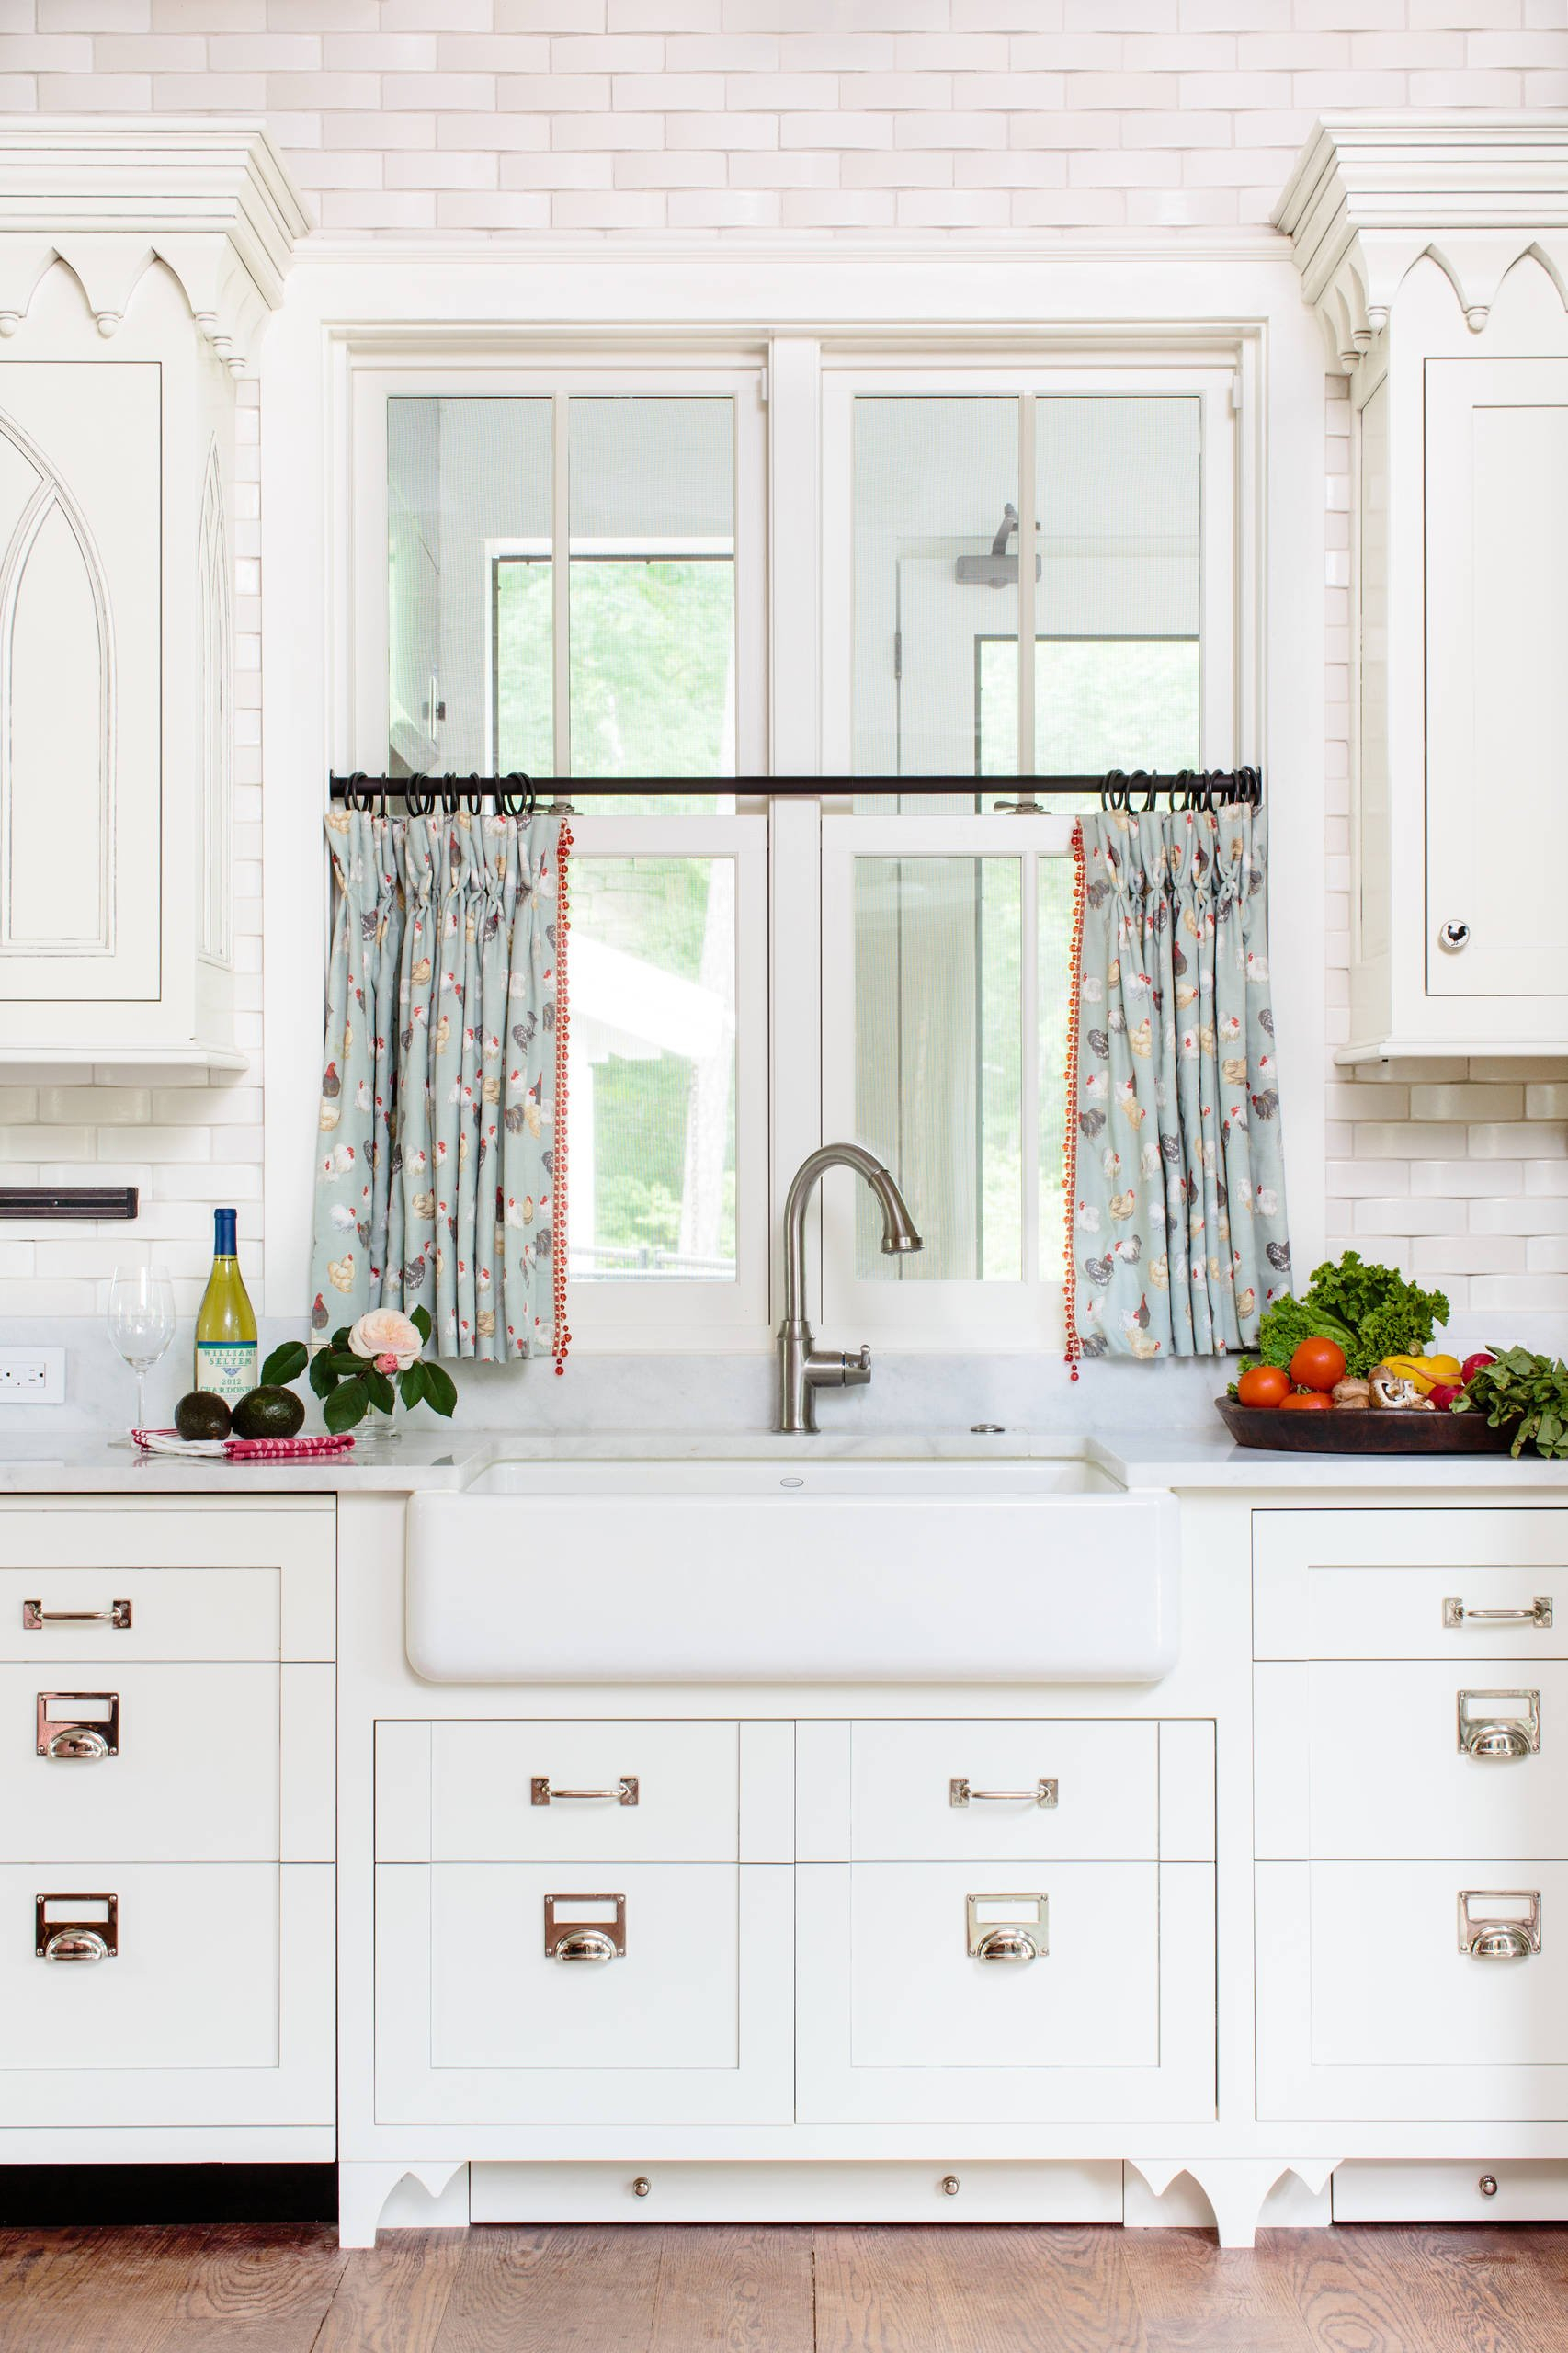 10 Best Patterns For Kitchen Curtains Cheap Farmhouse Sink Ikea Intended For Farmhouse Kitchen Curtains (Gallery 11 of 20)